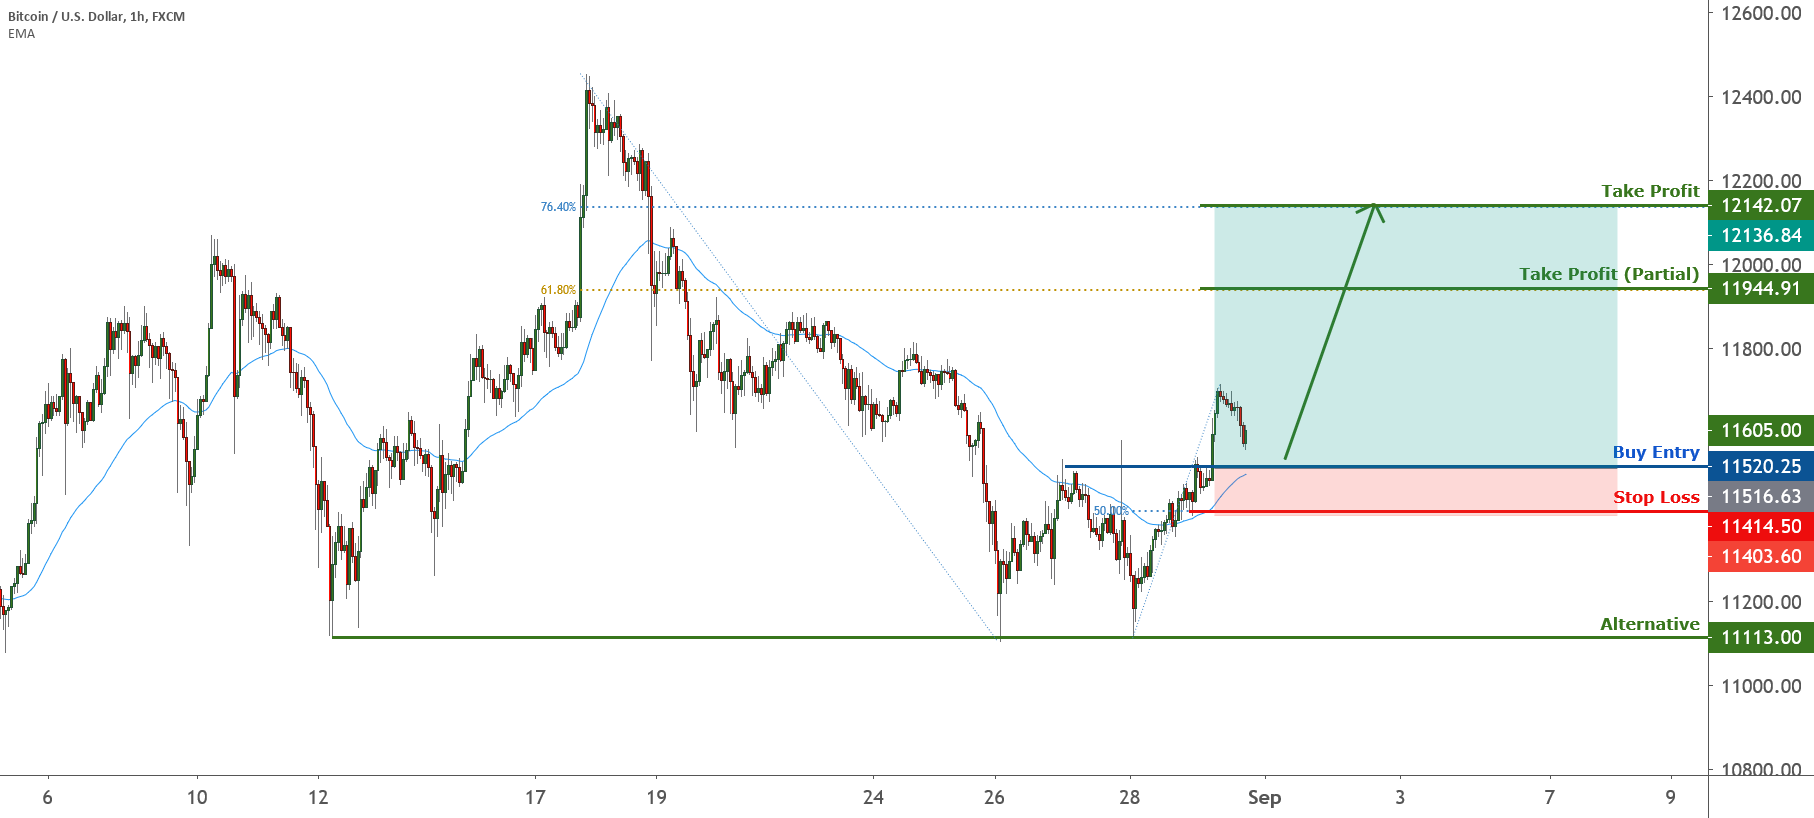 BTC bounced from support, potential for a further rise! |31 Aug for FX:BTCUSD by FXCM